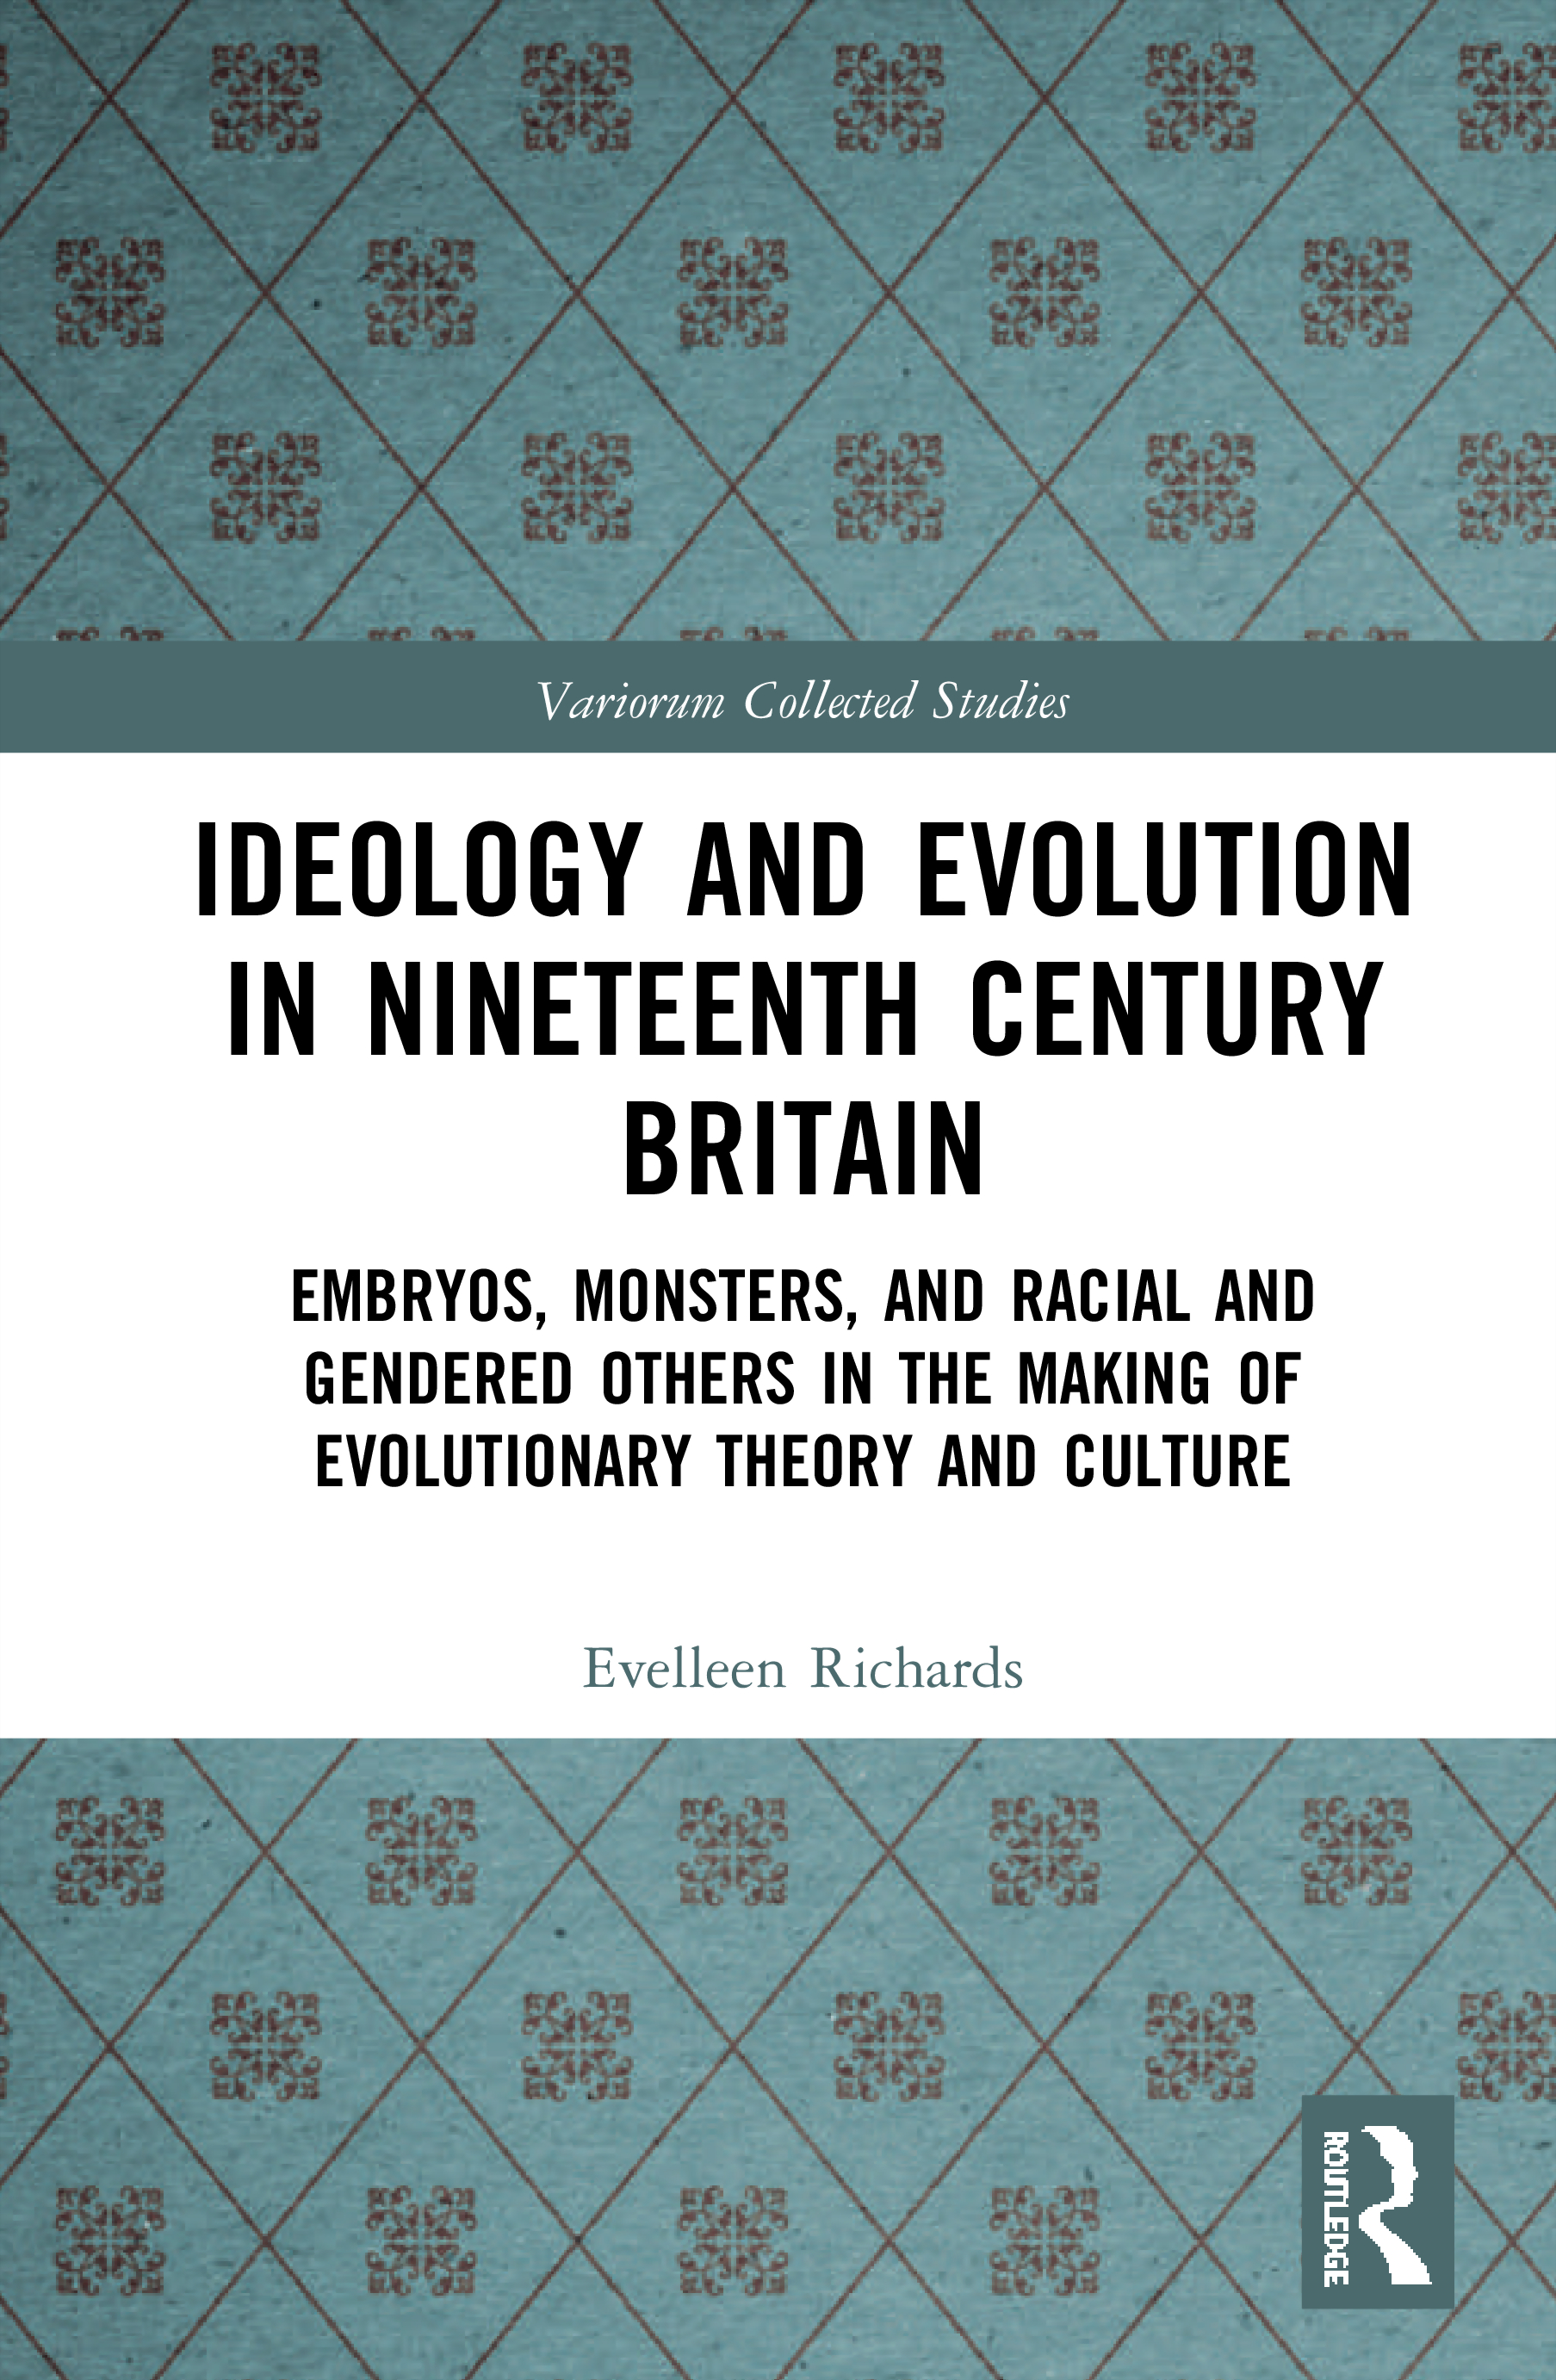 Ideology and Evolution in Nineteenth Century Britain: Embryos, Monsters, and Racial and Gendered Others in the Making of Evolutionary Theory and Culture book cover